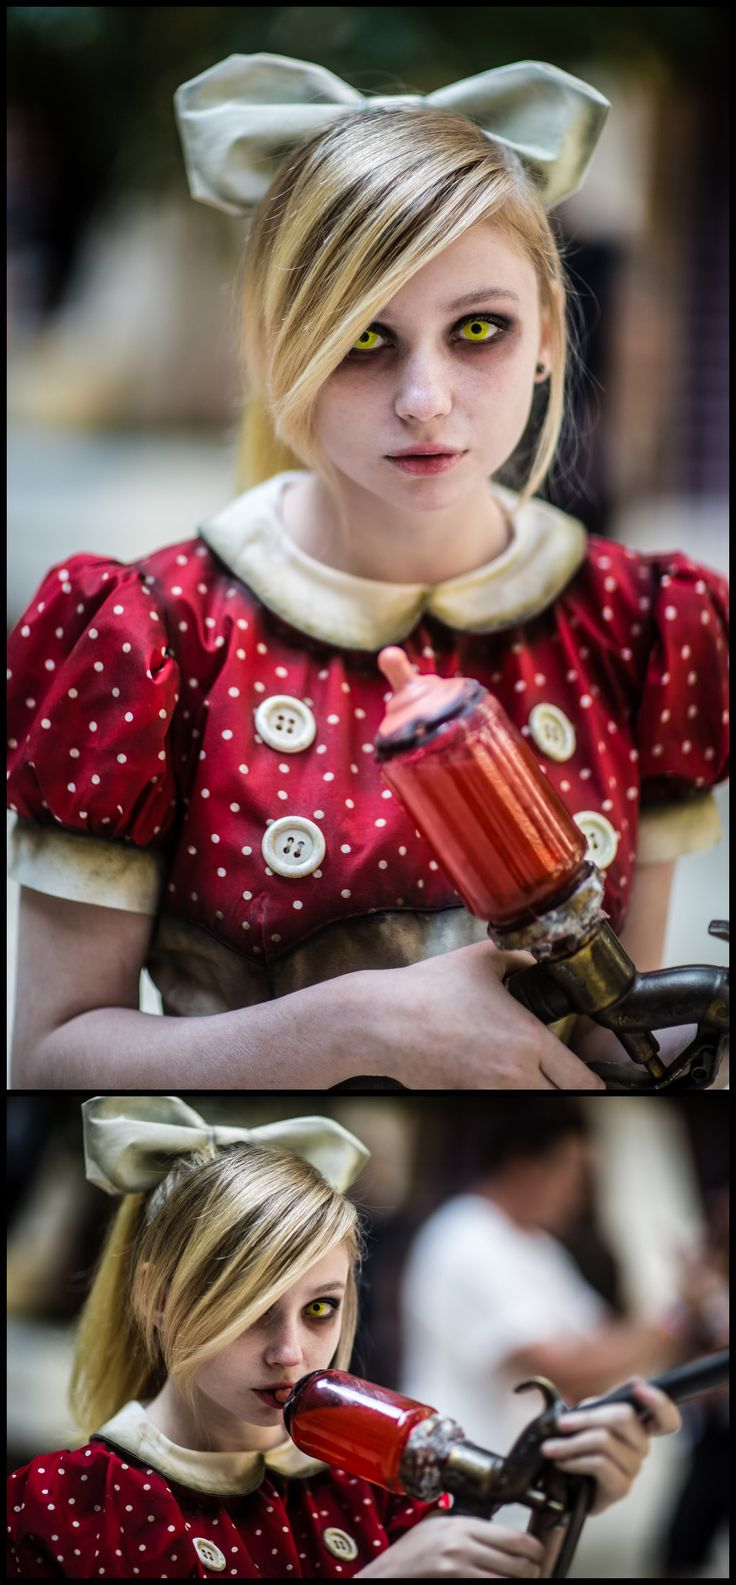 Little Sister (from Bioshock) #videogame #cosplay | AWA 2013